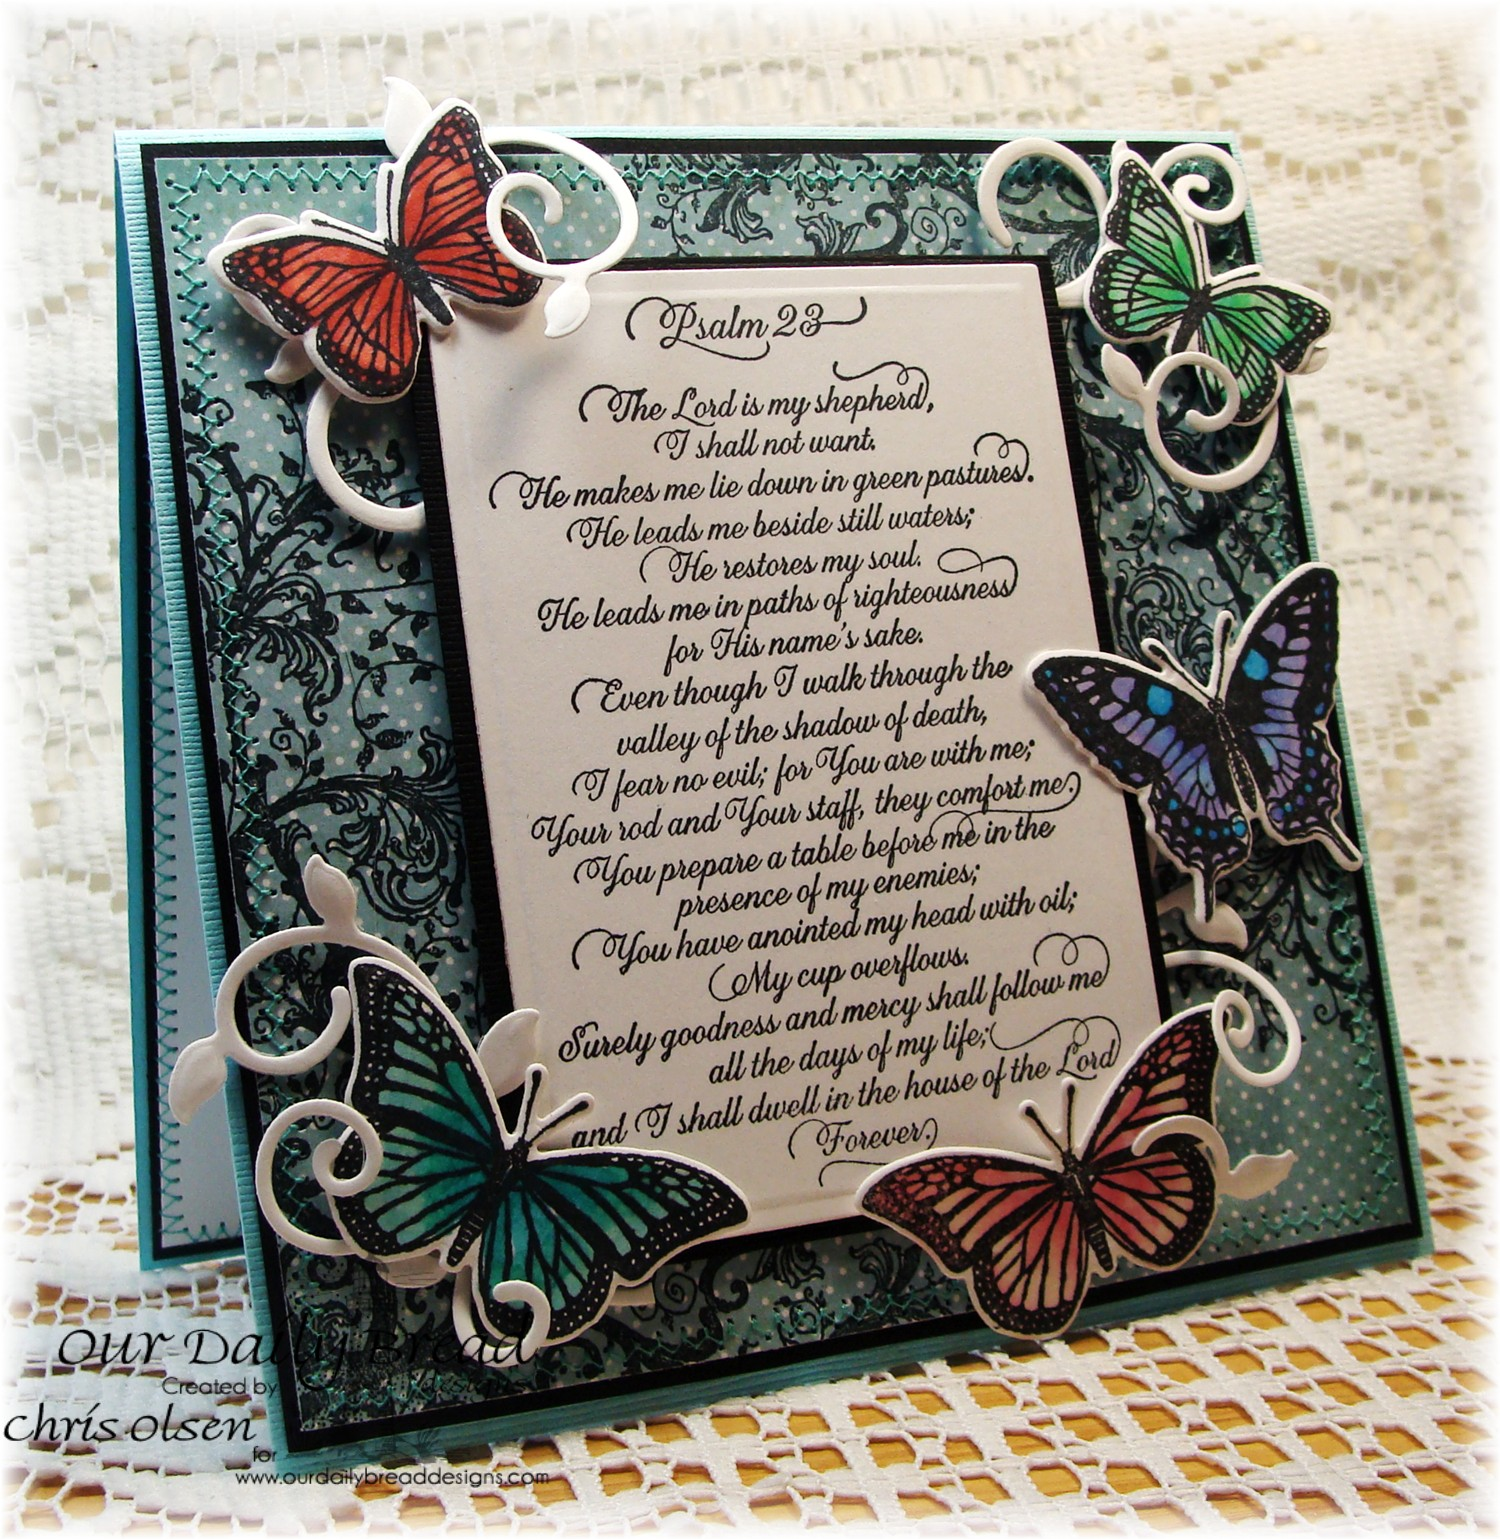 Stamps - Our Daily Bread Designs Belles Vinges, Trois Jolies Papillons, Psalm 23 Script, ODBD Custom Dies: Trois Papillons, Fancy Foliage, ODBD  Christmas 2014 Paper Collection